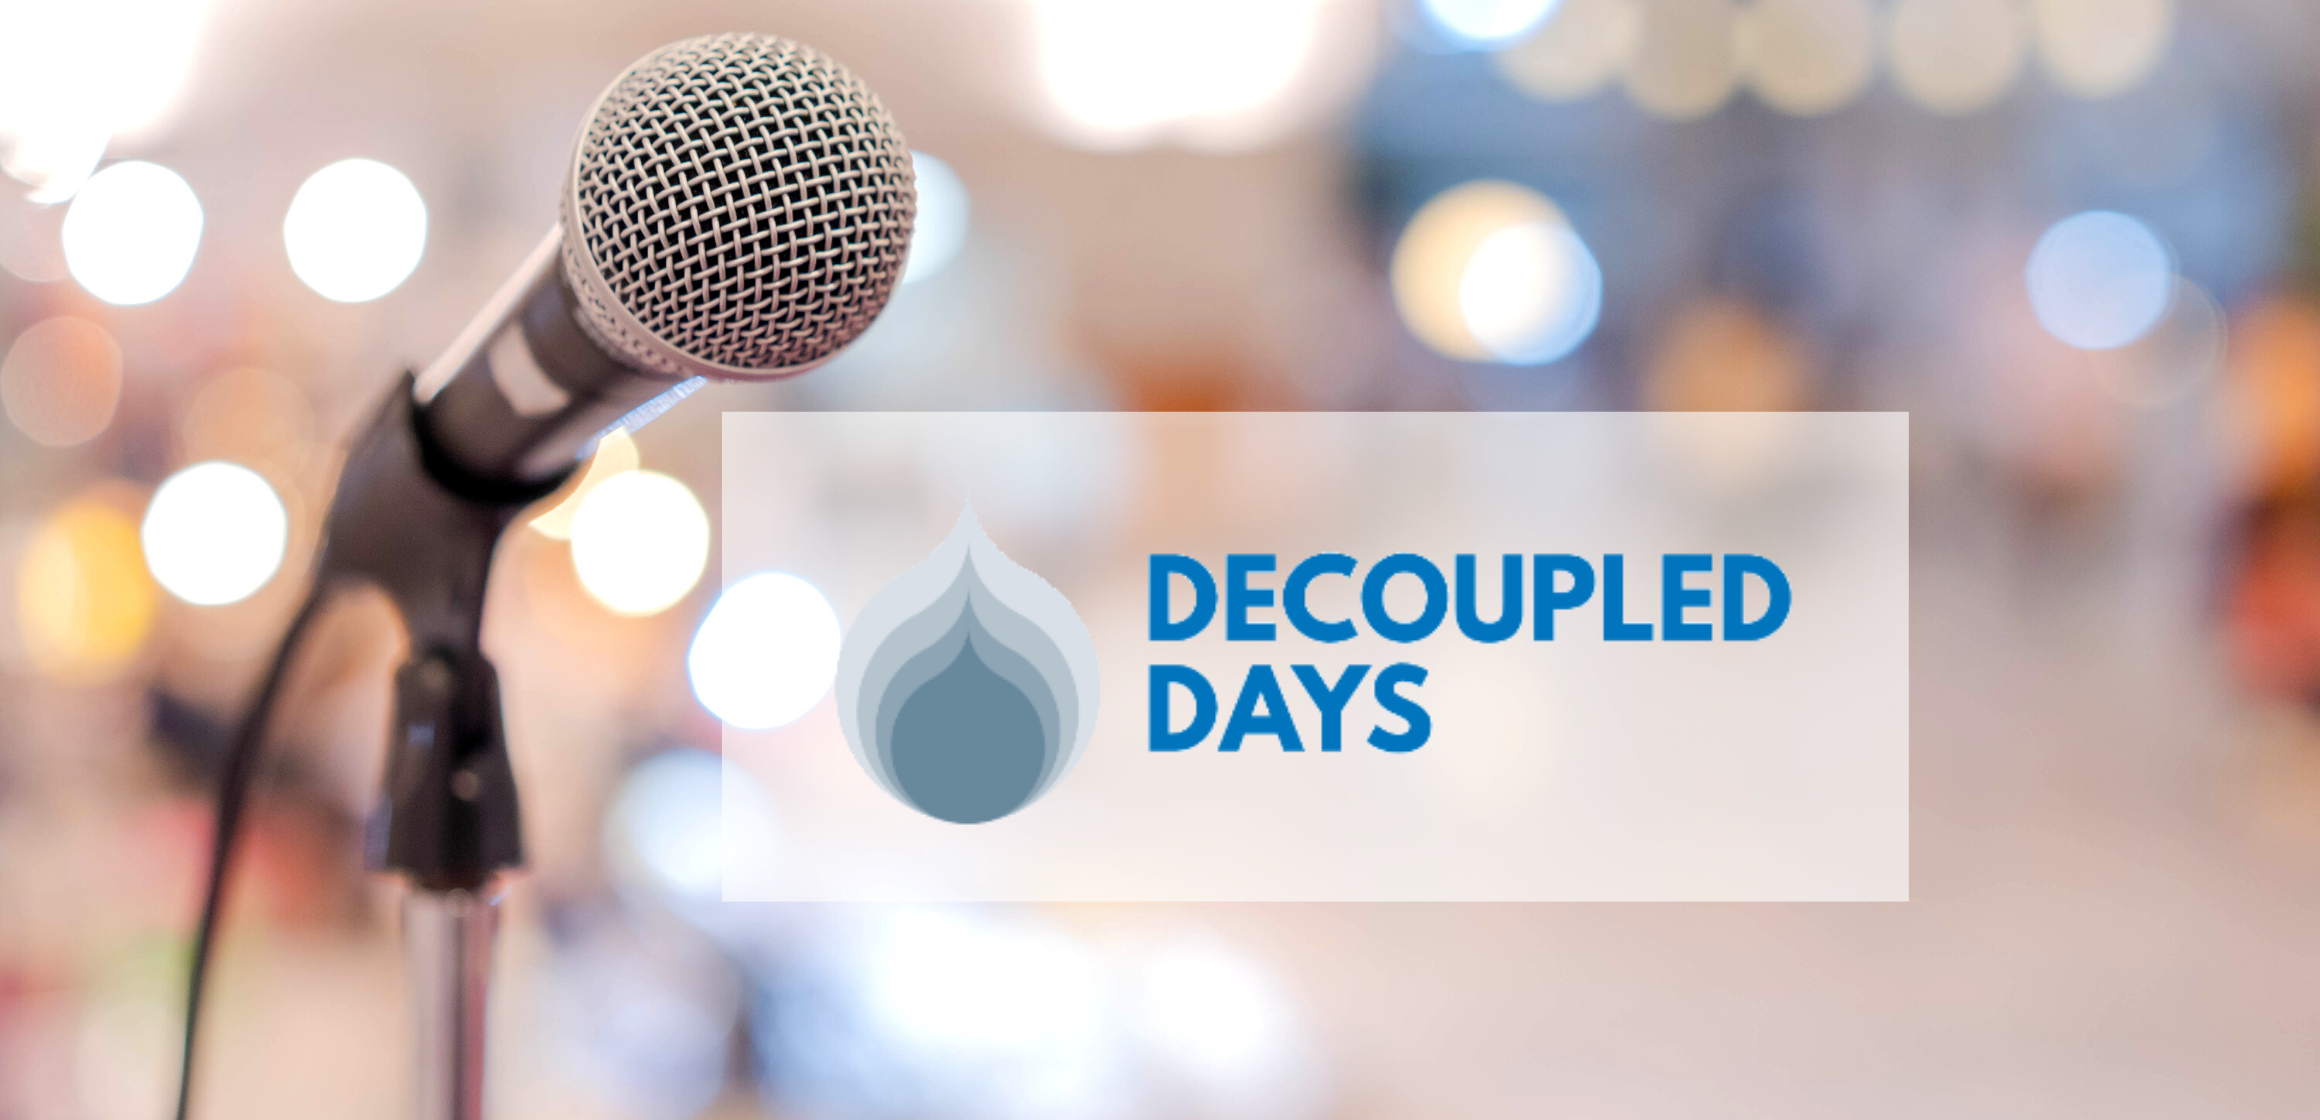 Decoupled Days 2020